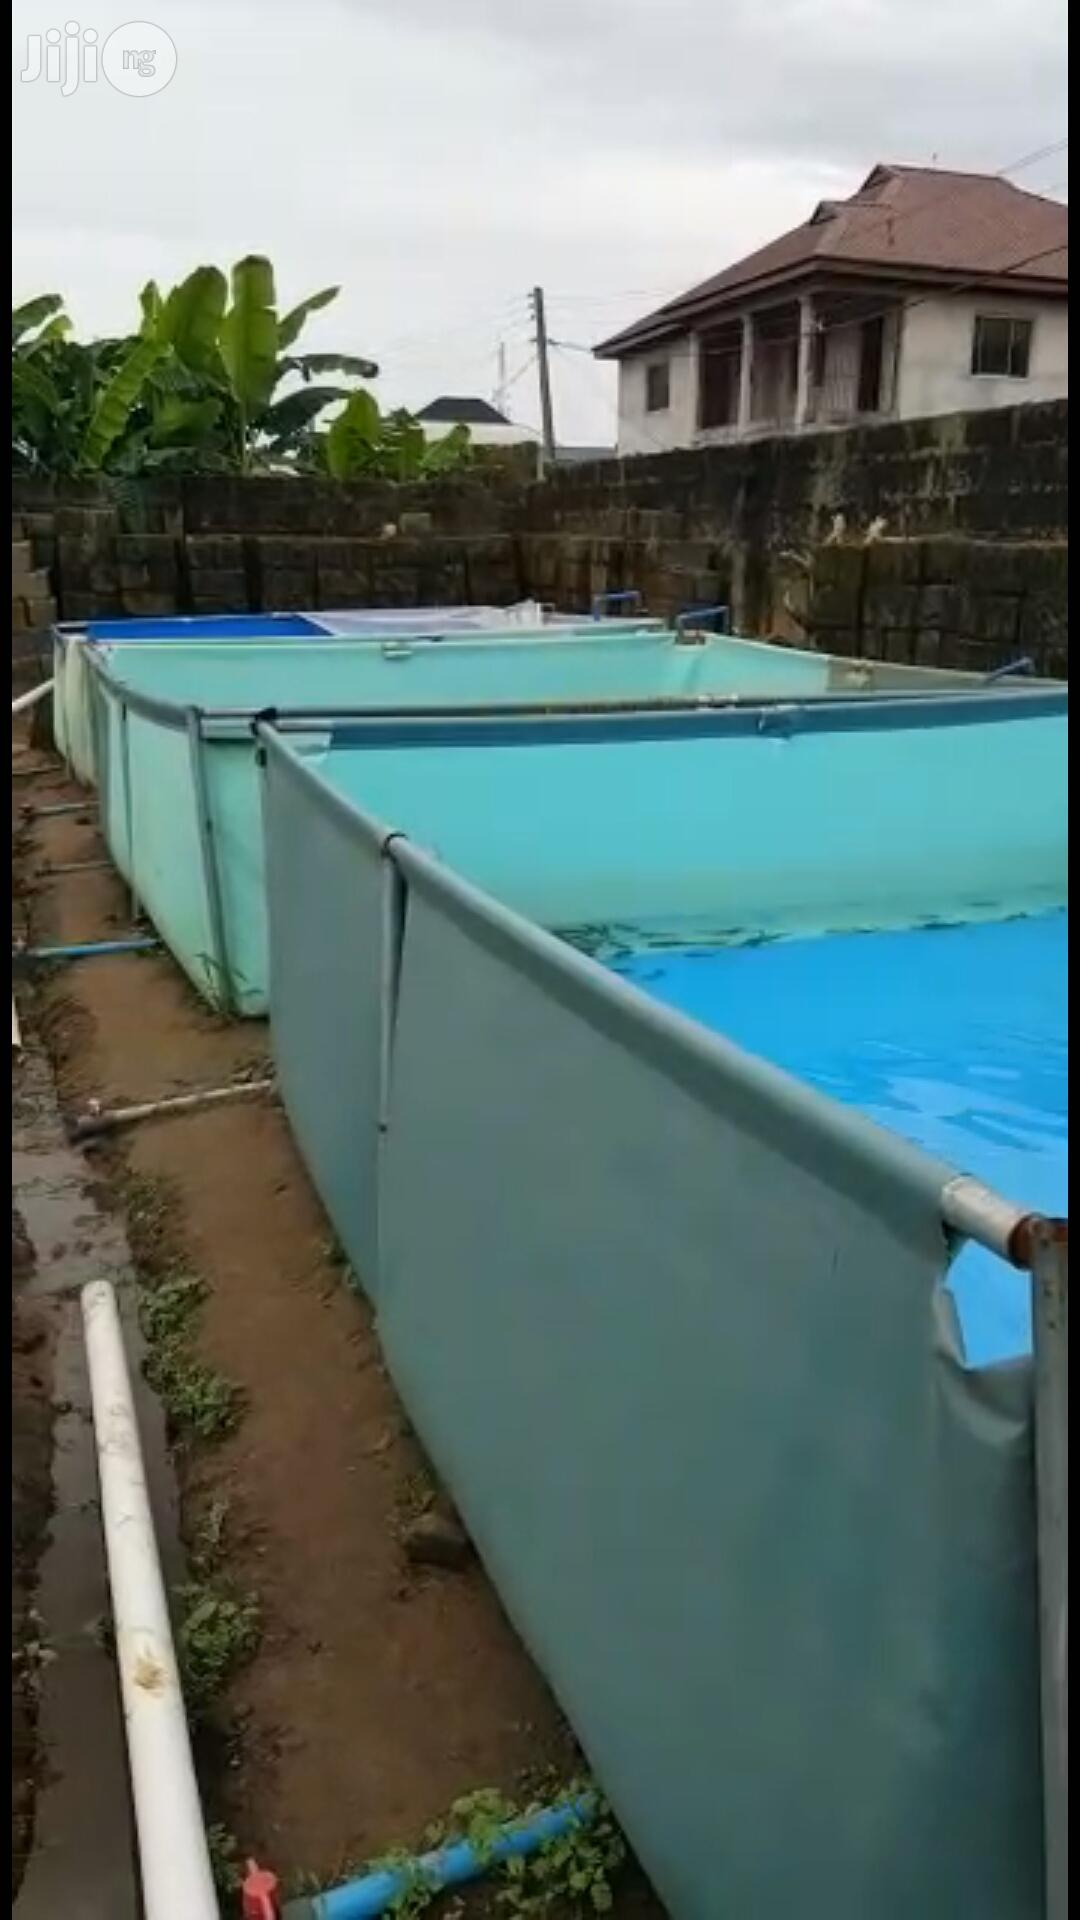 Fish Pond Construction Of Adjustable Tapolyne Fish Pond | Farm Machinery & Equipment for sale in Port-Harcourt, Rivers State, Nigeria